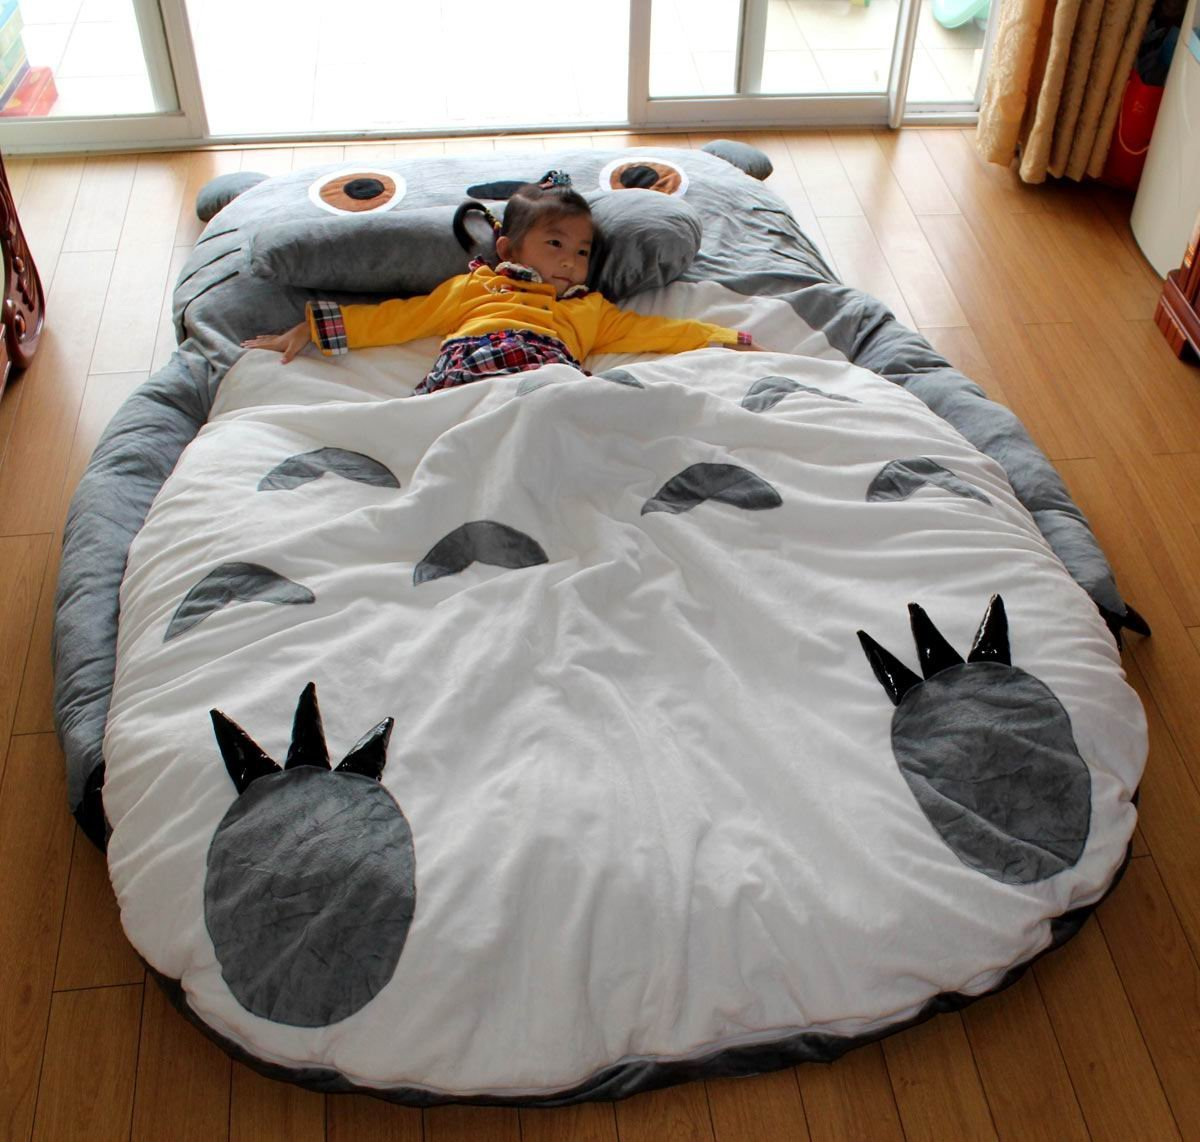 amazoncom totoro double bed totoro bed totoro sleeping bag totoro design bed large size 23x175m childrens bed frames - Bed Frames Amazon